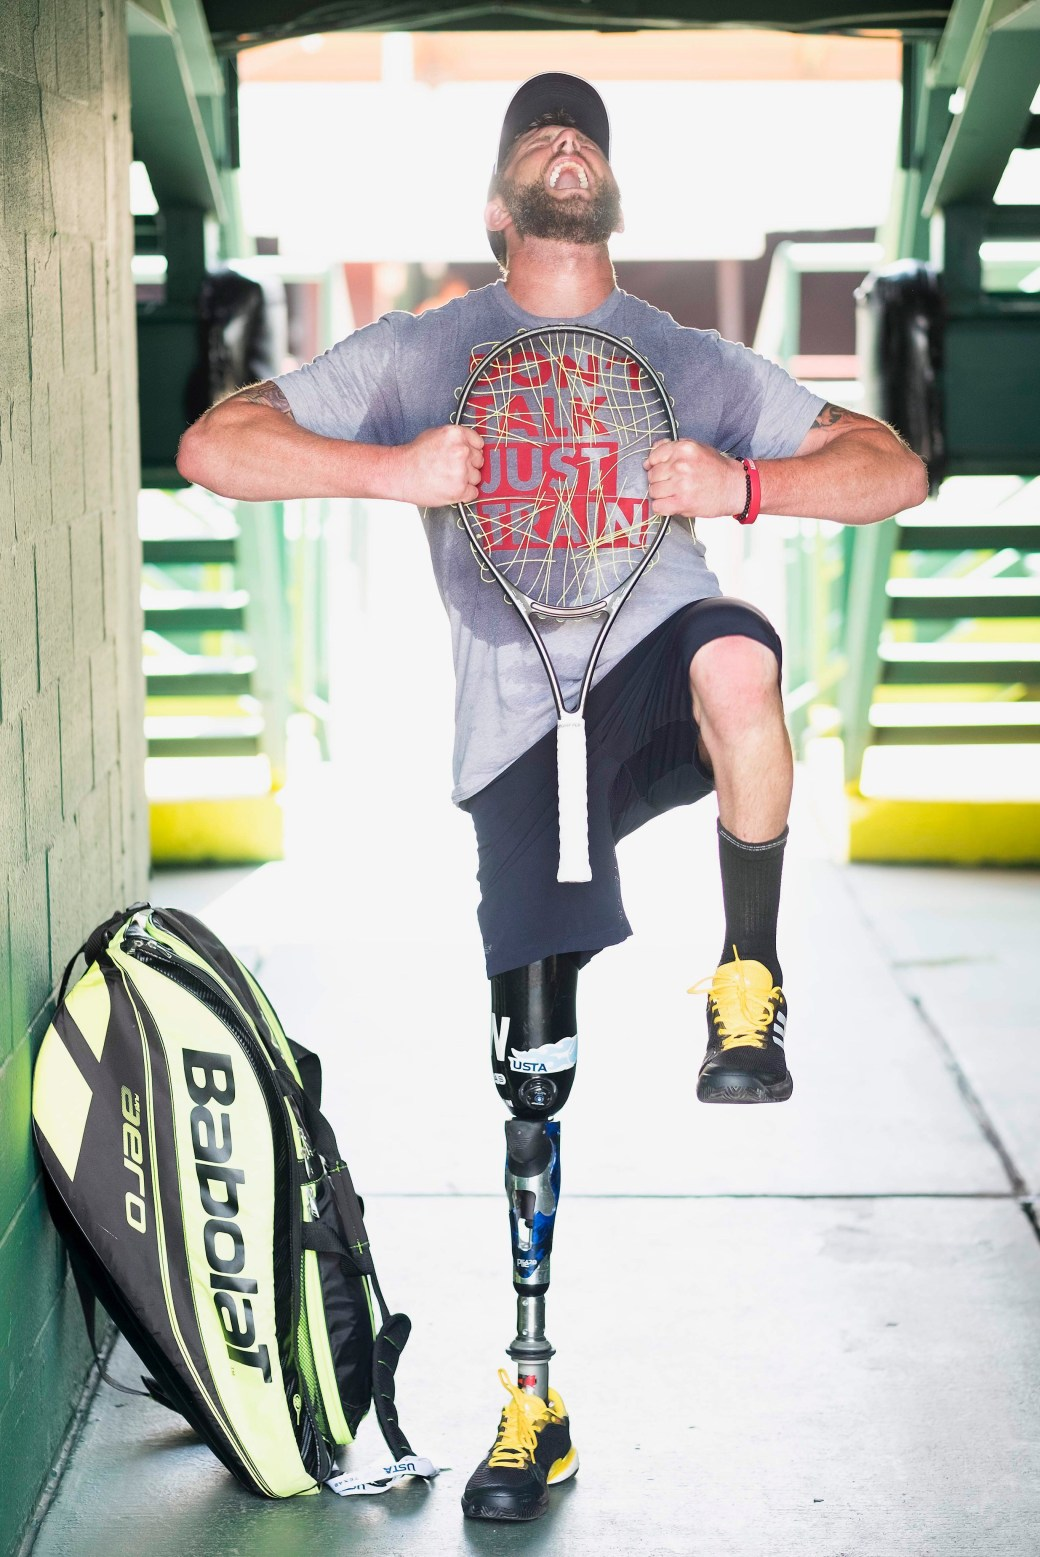 Jeff Bourns on what it is like being approached in public and asked about his prosthetic leg or life as an amputee